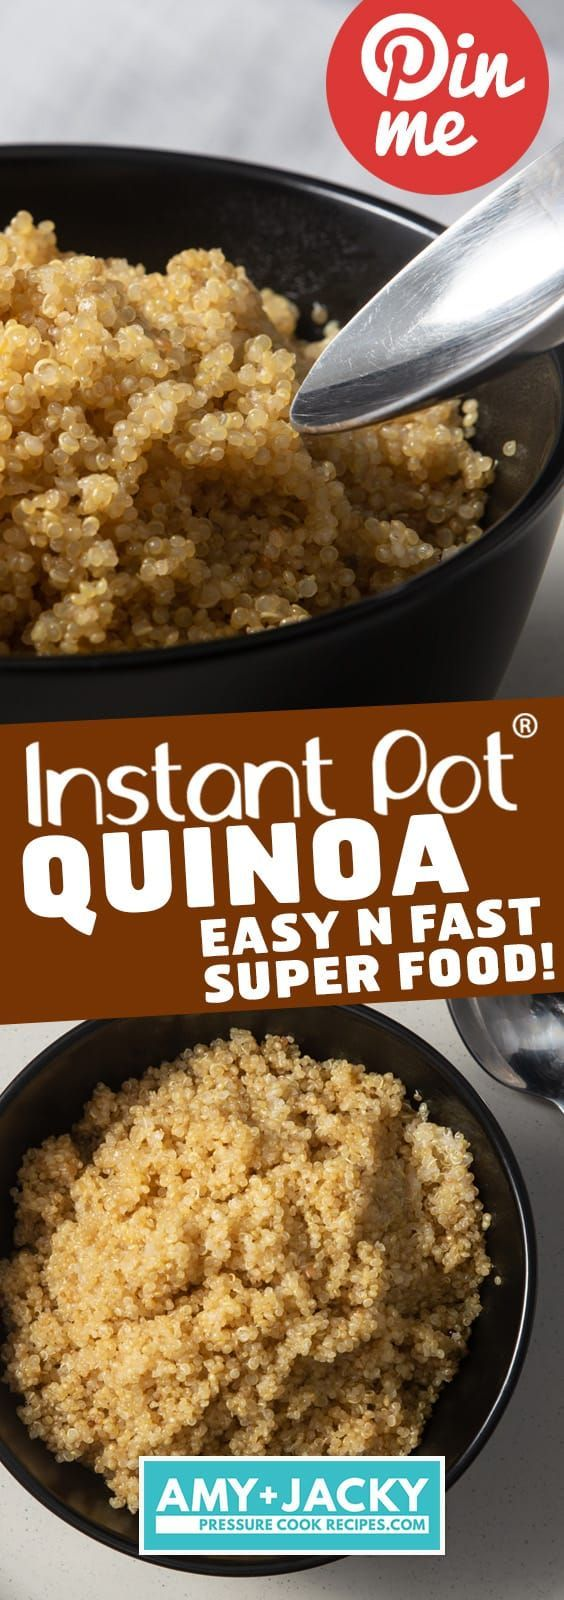 Fast, Easy way to cook Perfectly Fluffy, TastyInstant Pot Quinoa! Nuttysuper…